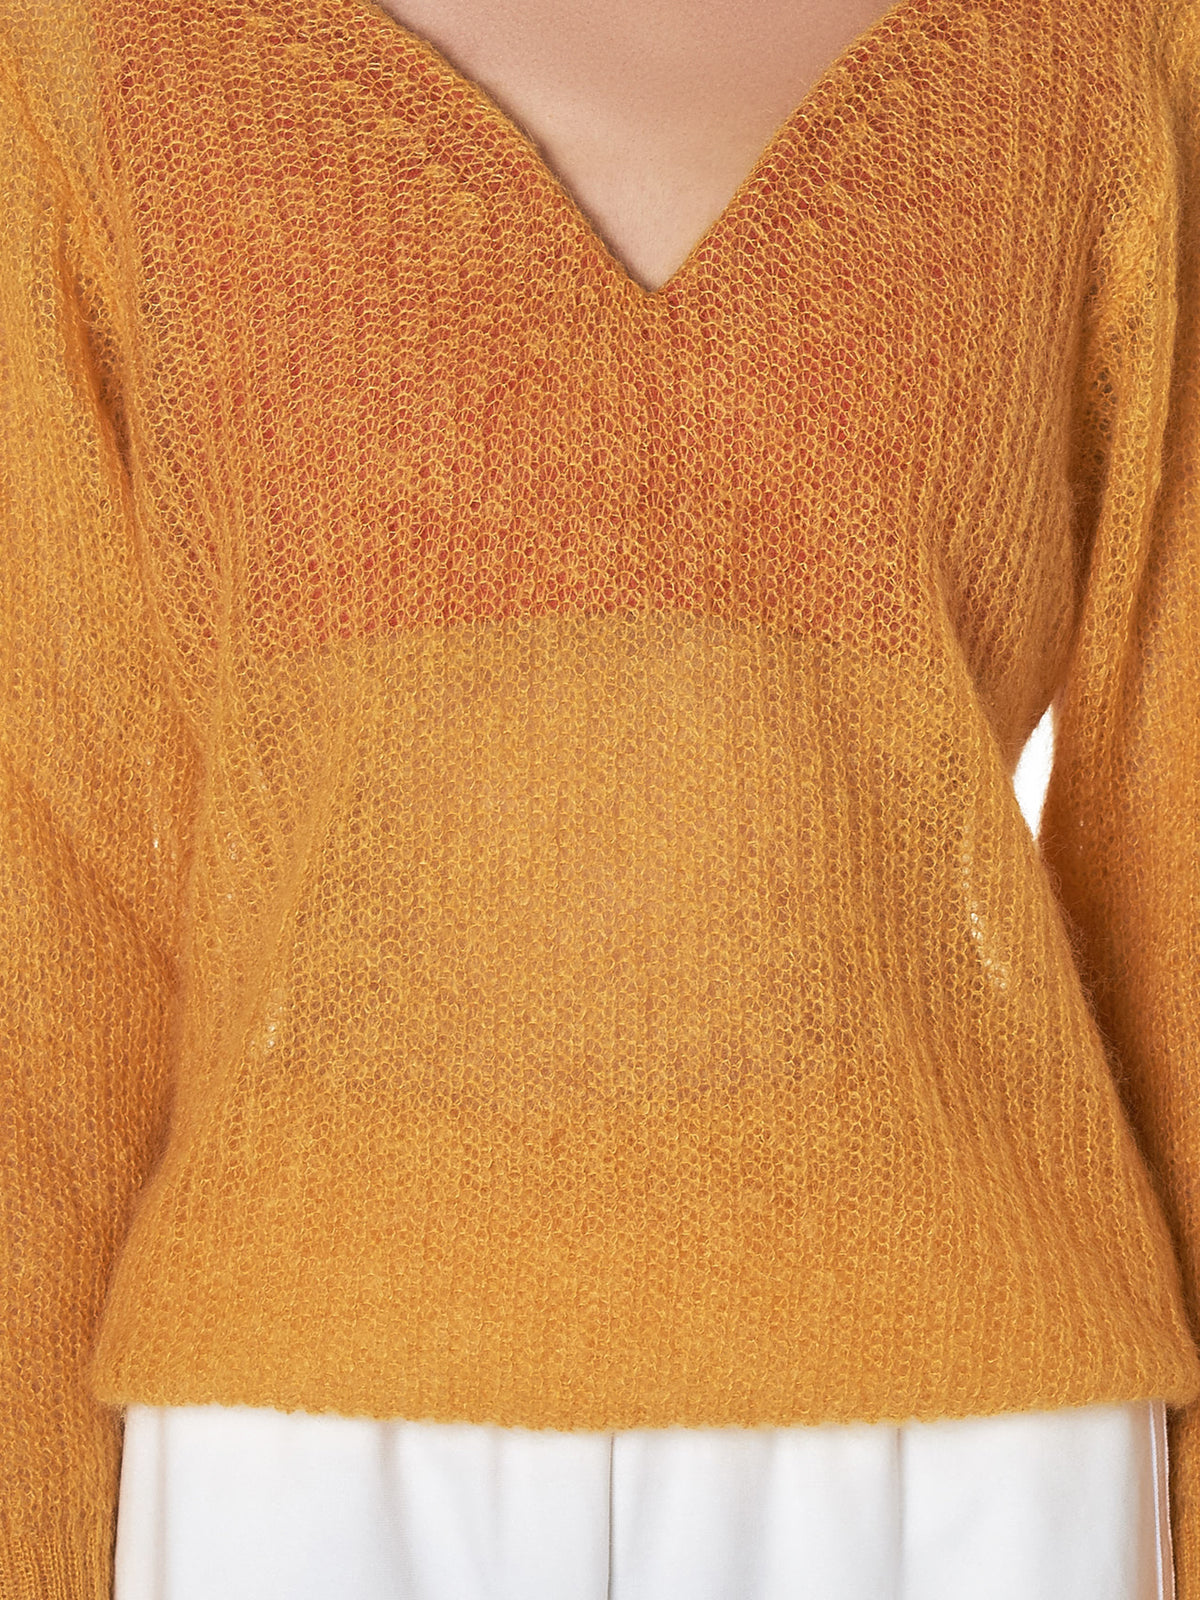 Y/Project Yellow Sweater - Hlorenzo Detail 2